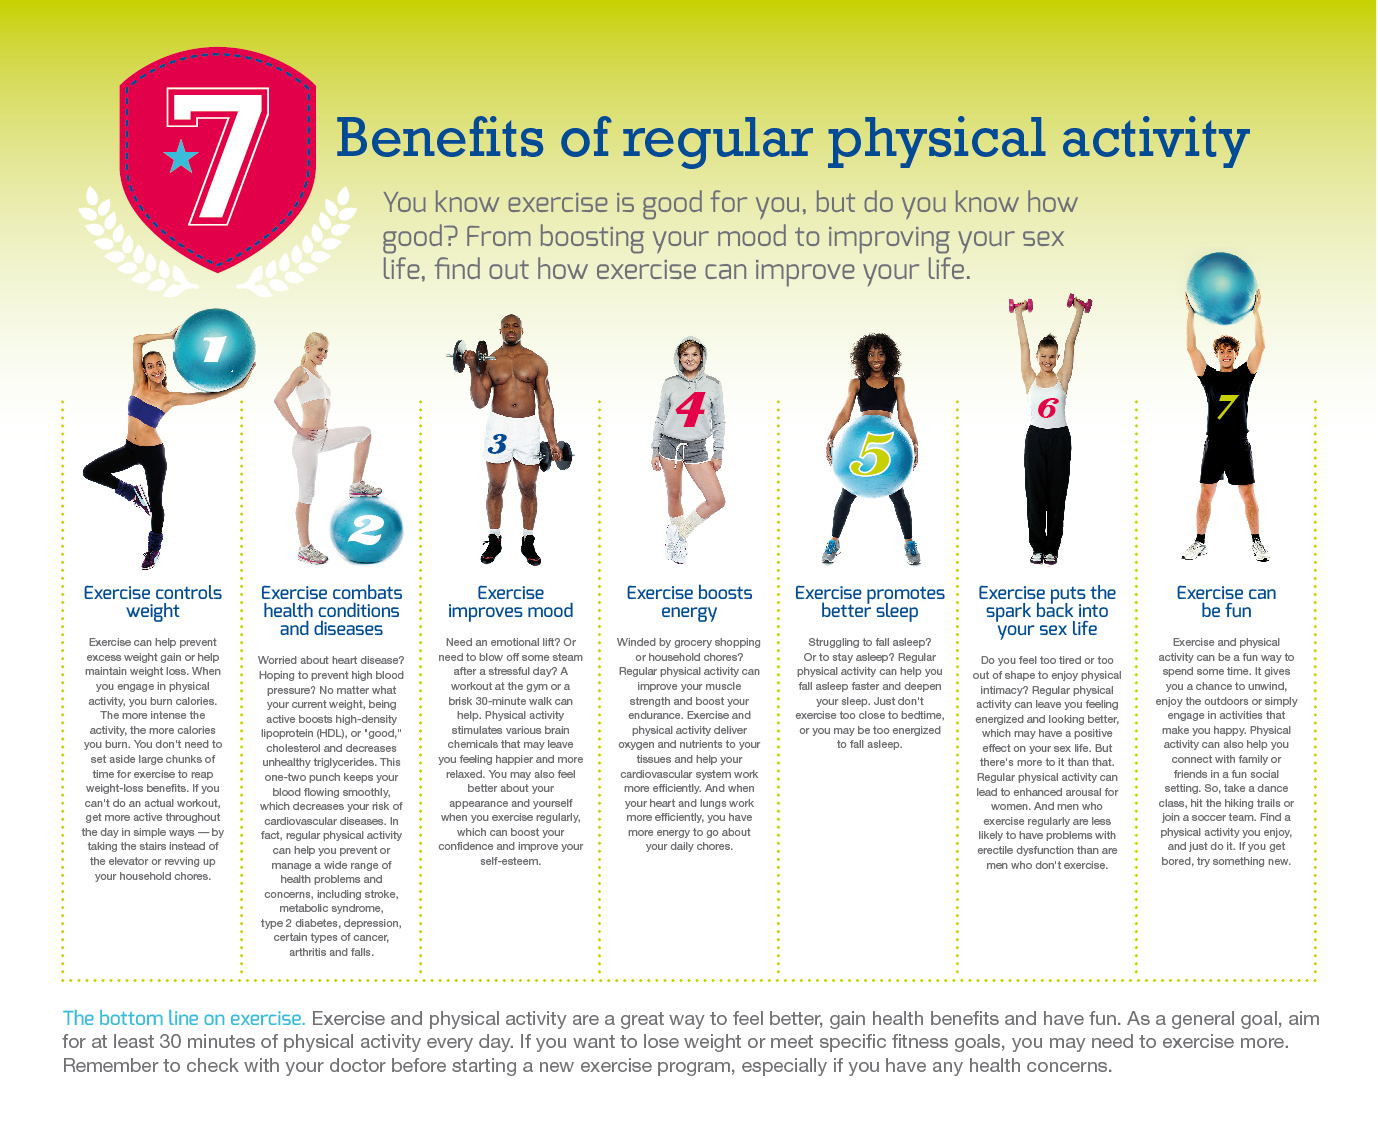 essay about benefits of regular exercise The benefits of regular exercise [this sample essay was written for the use of  our students by bette latta, a professor in the english department at the former.